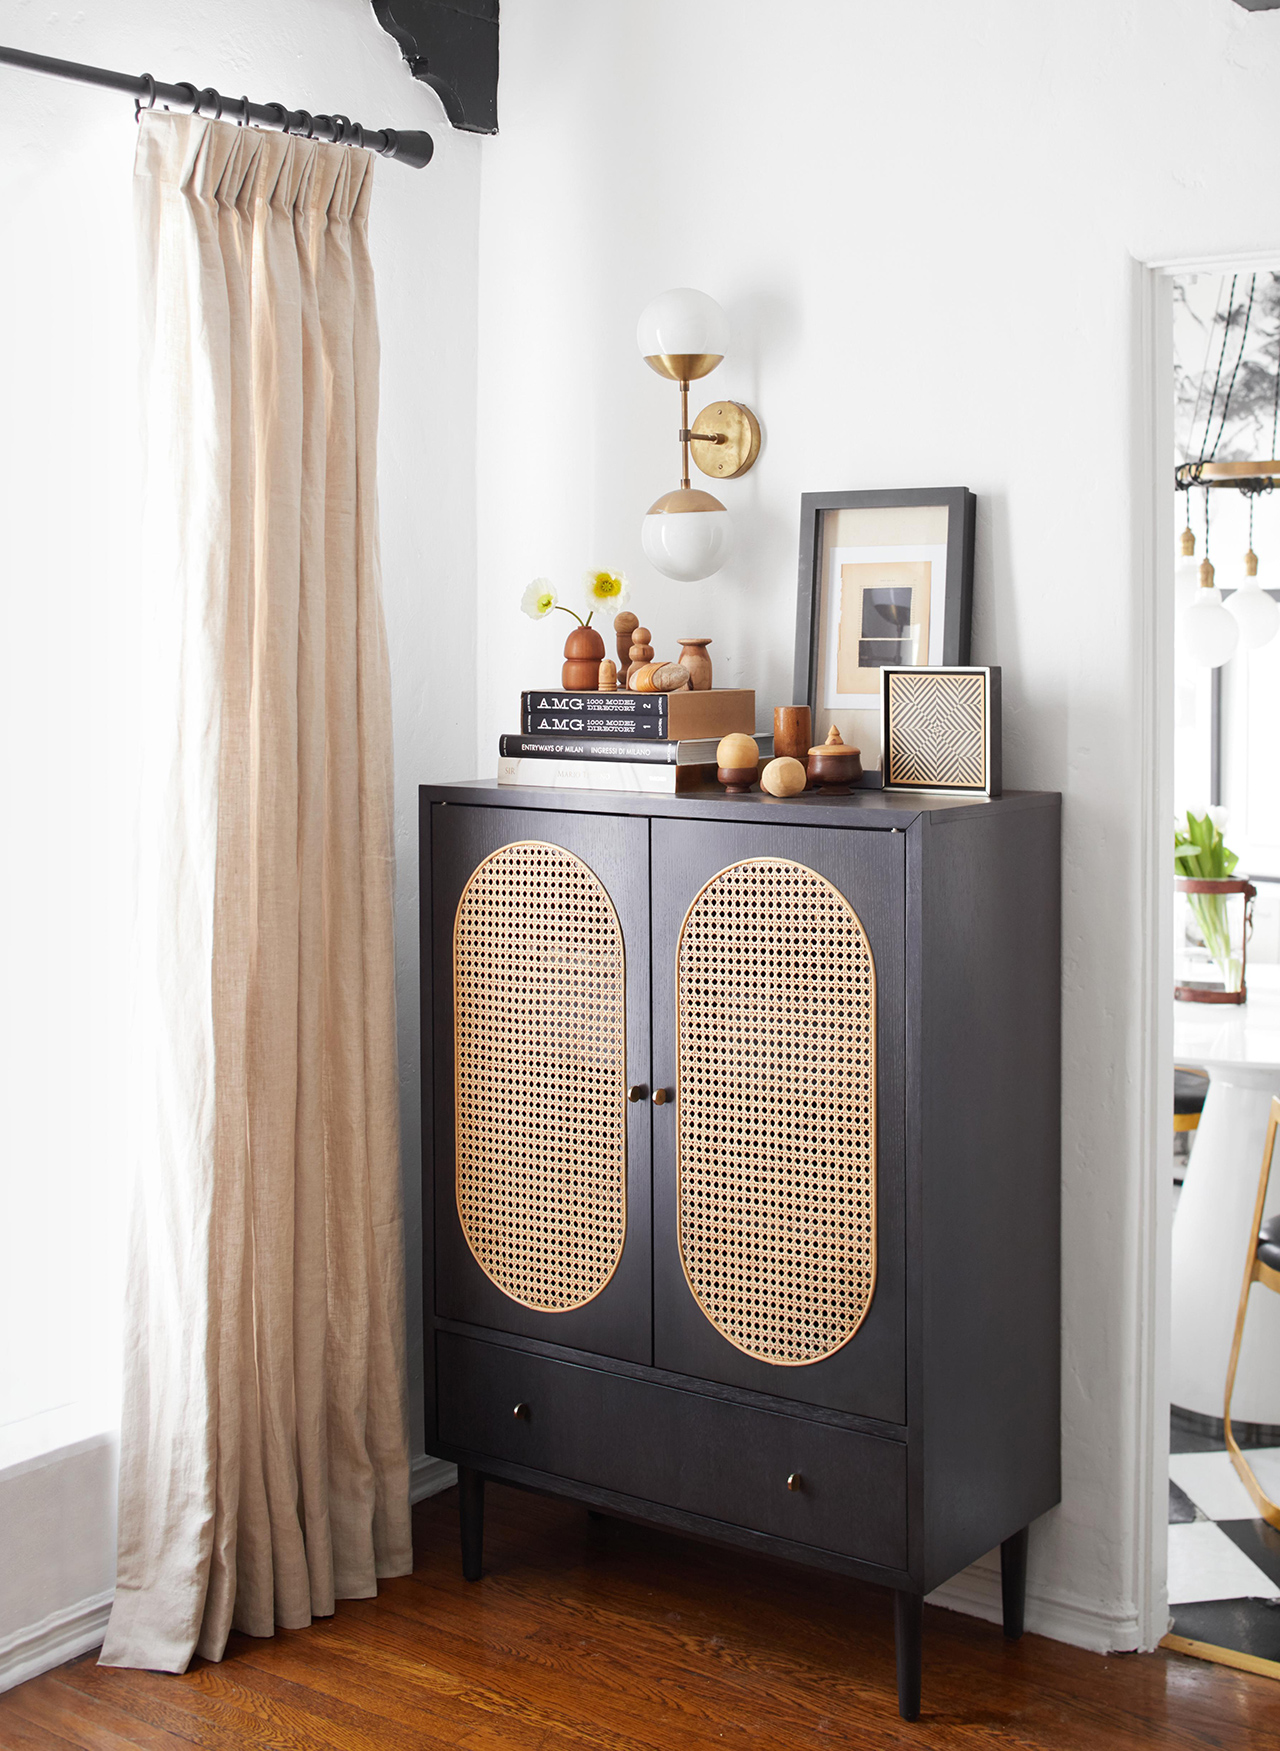 bar cabinet with woven caning on doors